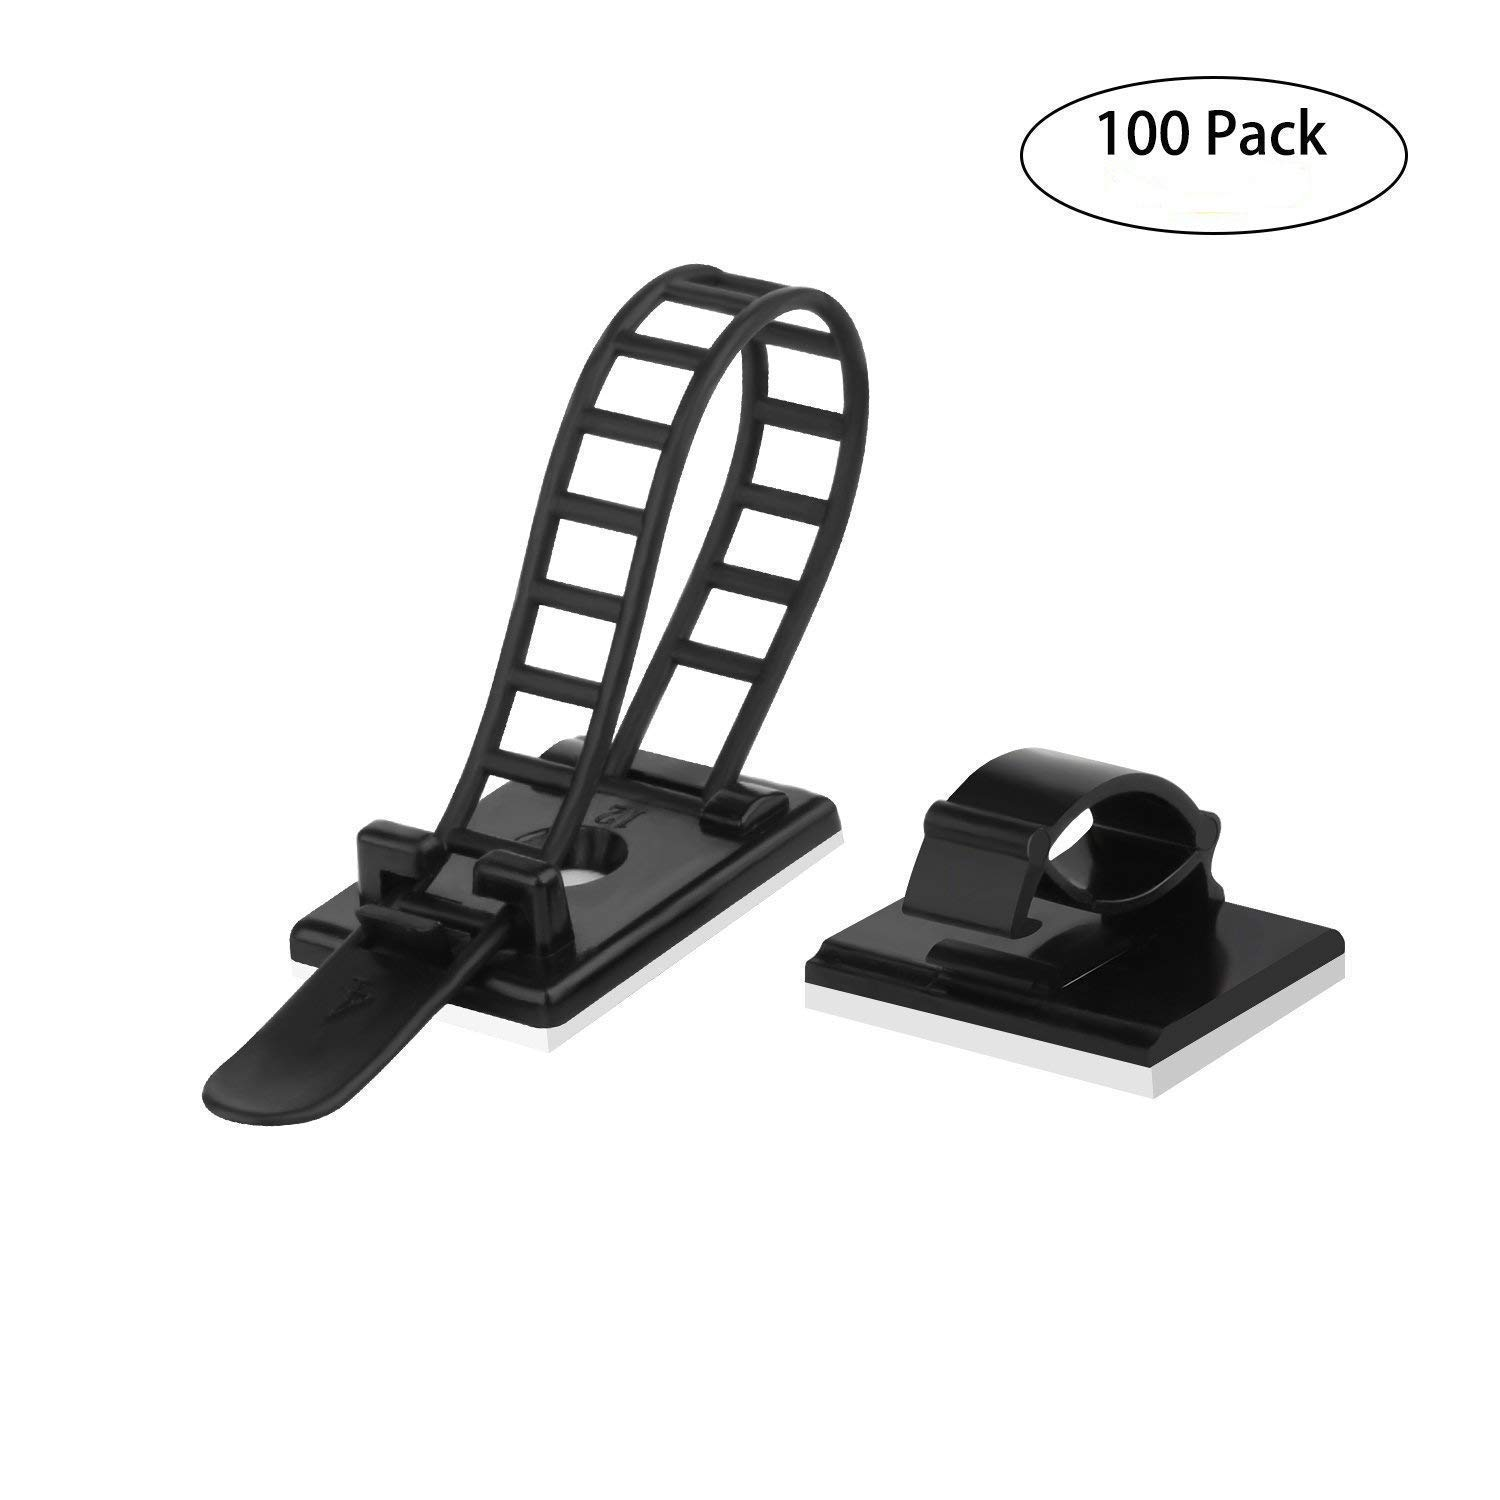 100Pcs Cable Clips Cable Clamp Adhesive Cable Ties Holder Cord Management Clips for Car, Office and Home Md trade